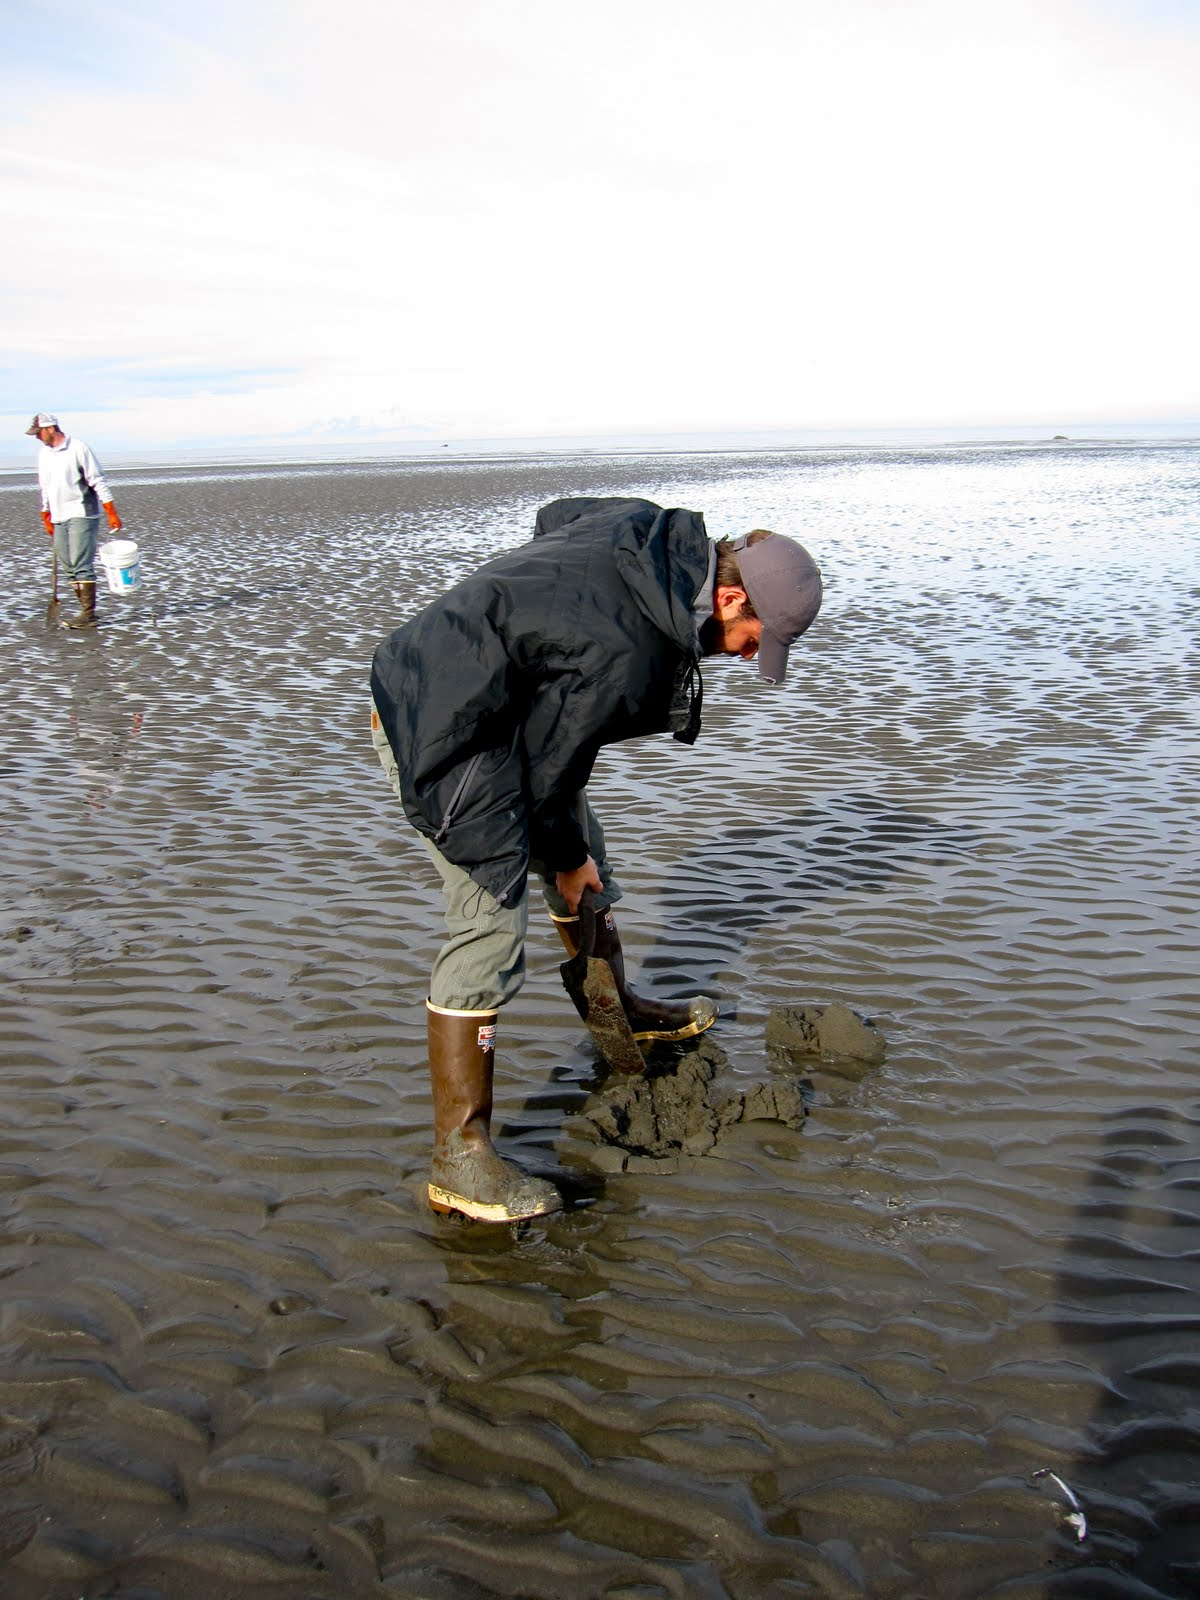 Clamming in Clam Gulch, Alaska